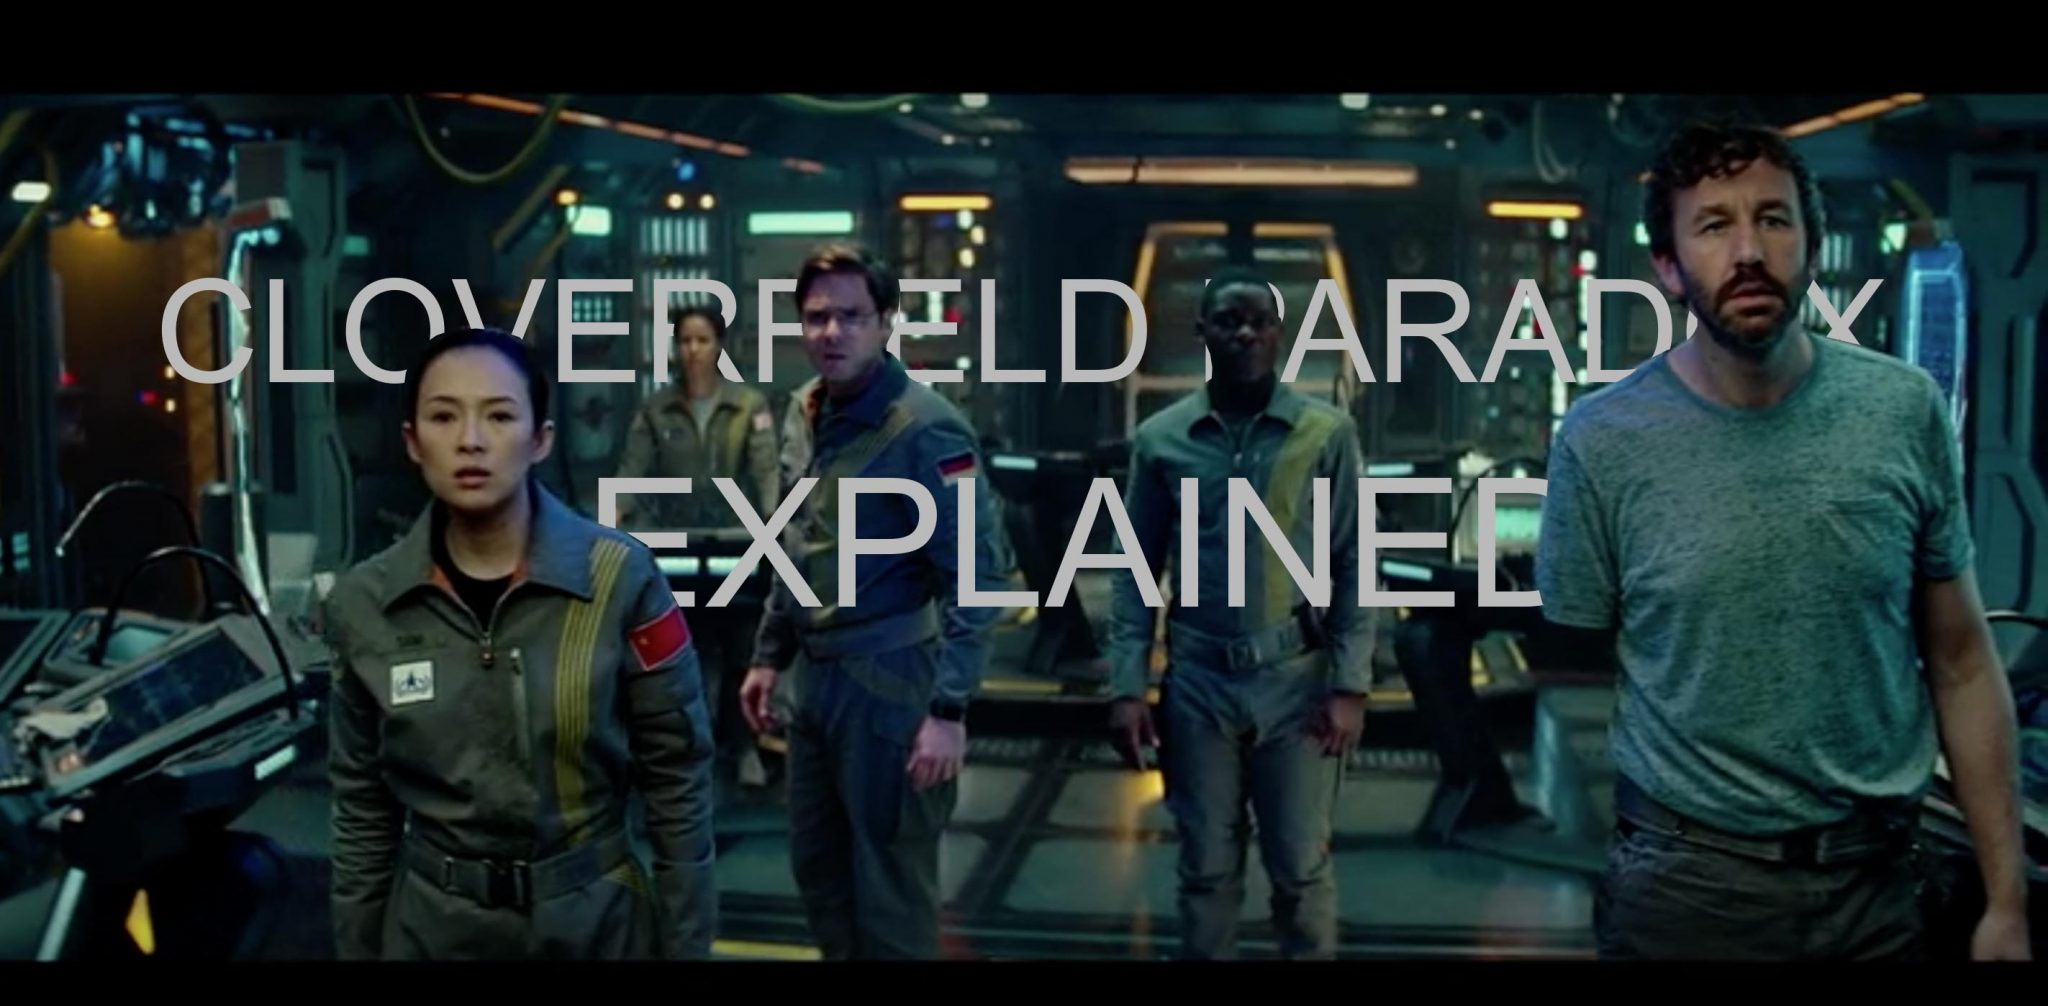 Can You Explain This Cloverfield Paradox Thing? - Taylor